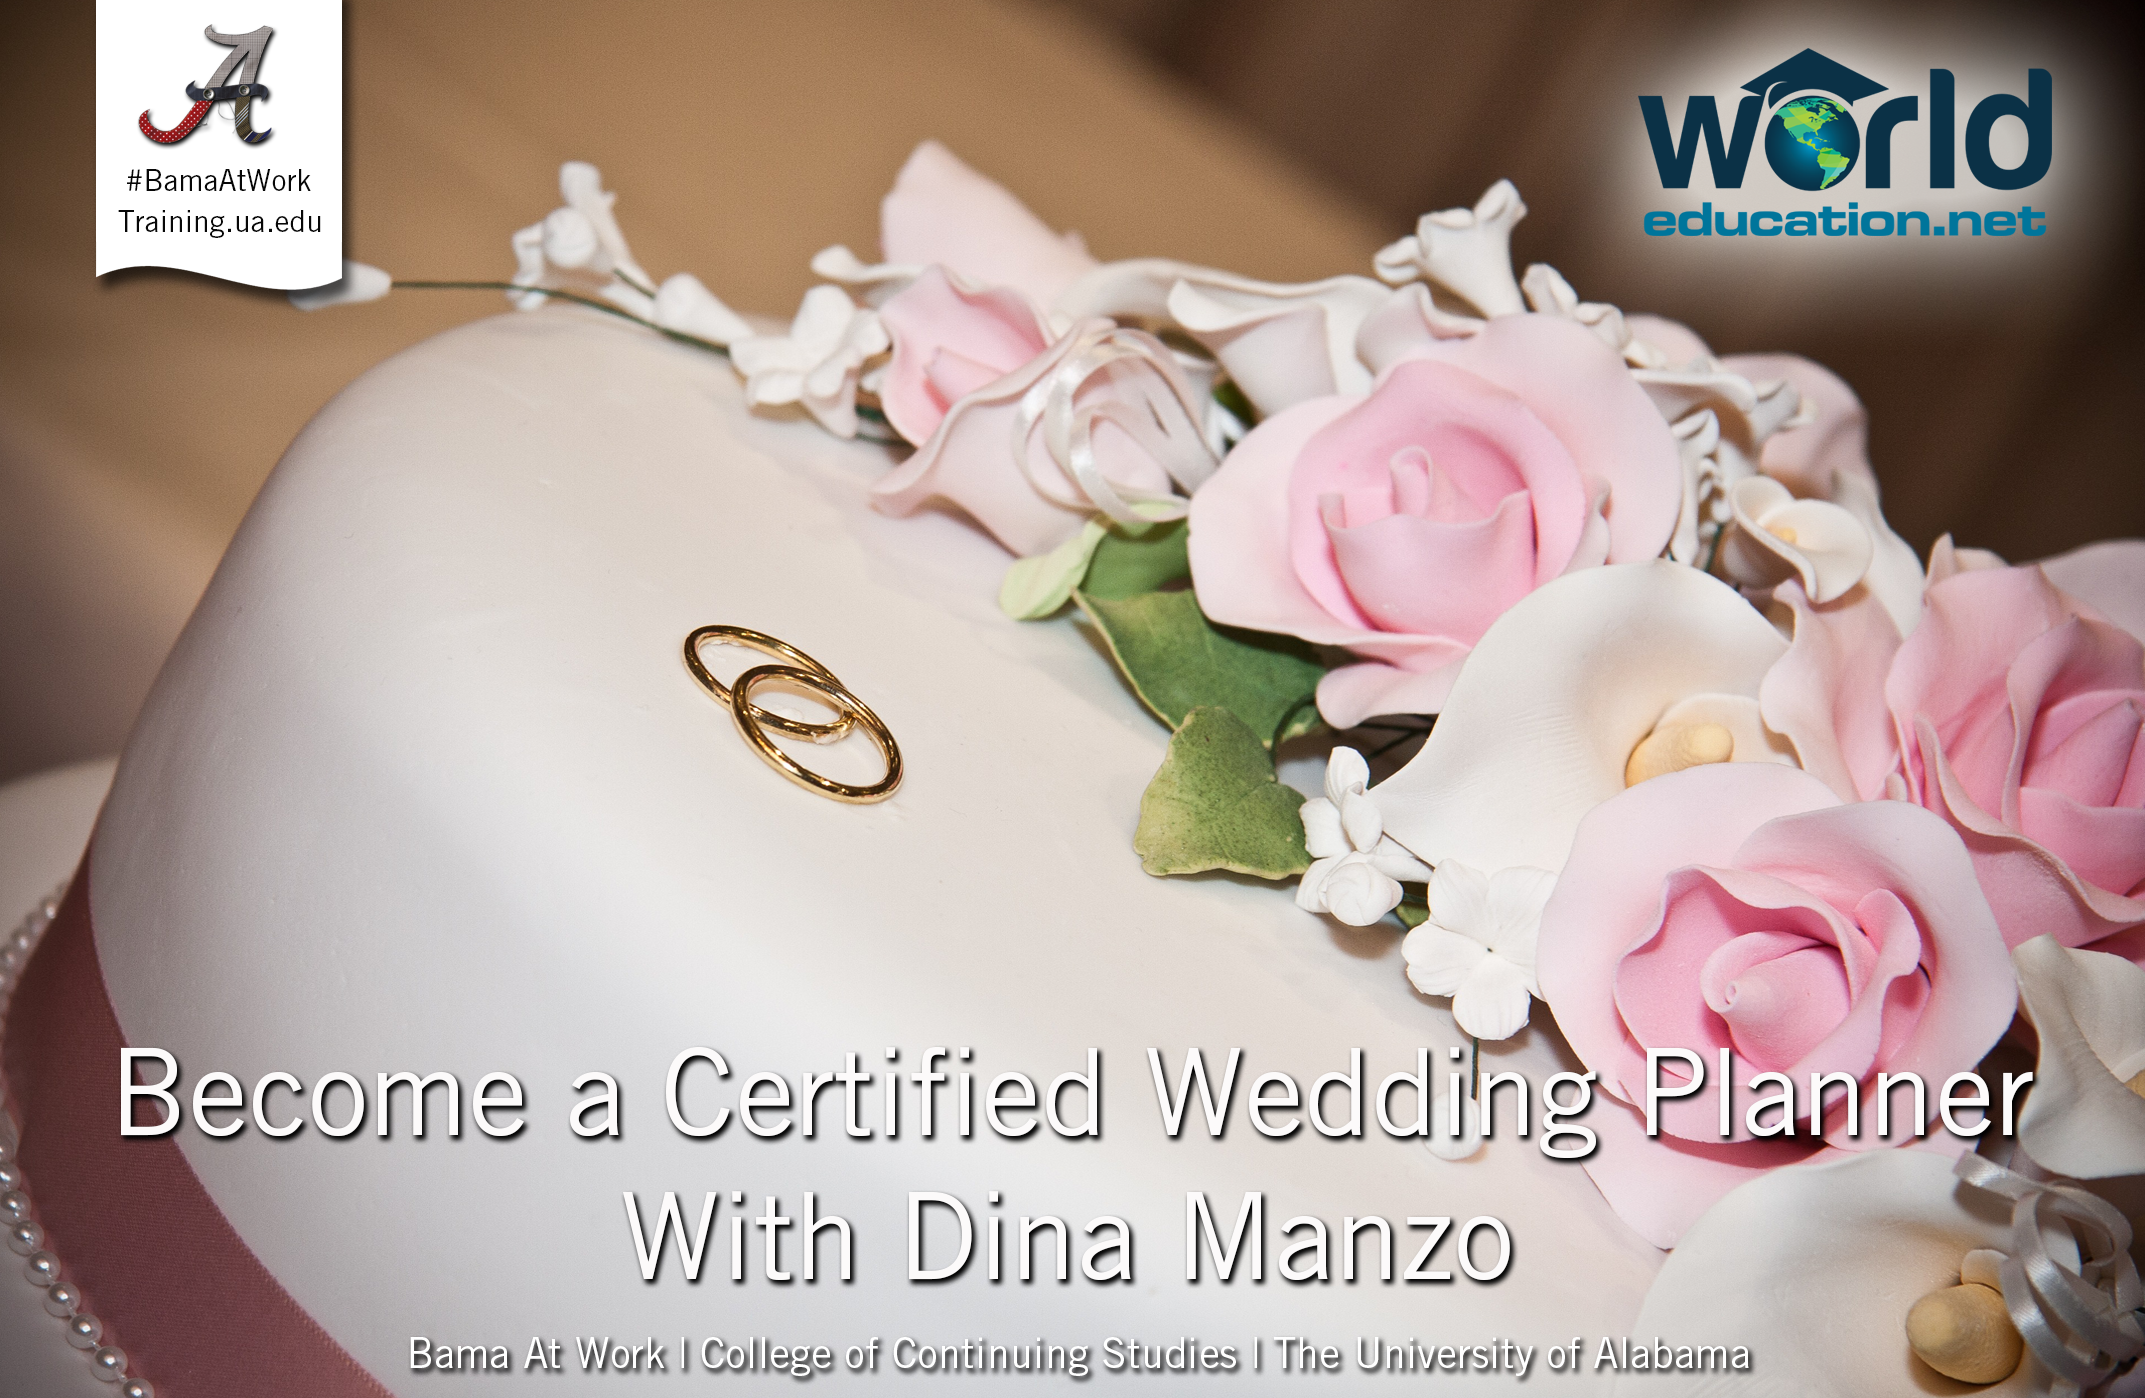 Wedding Planner Certificate With Dina Manzo